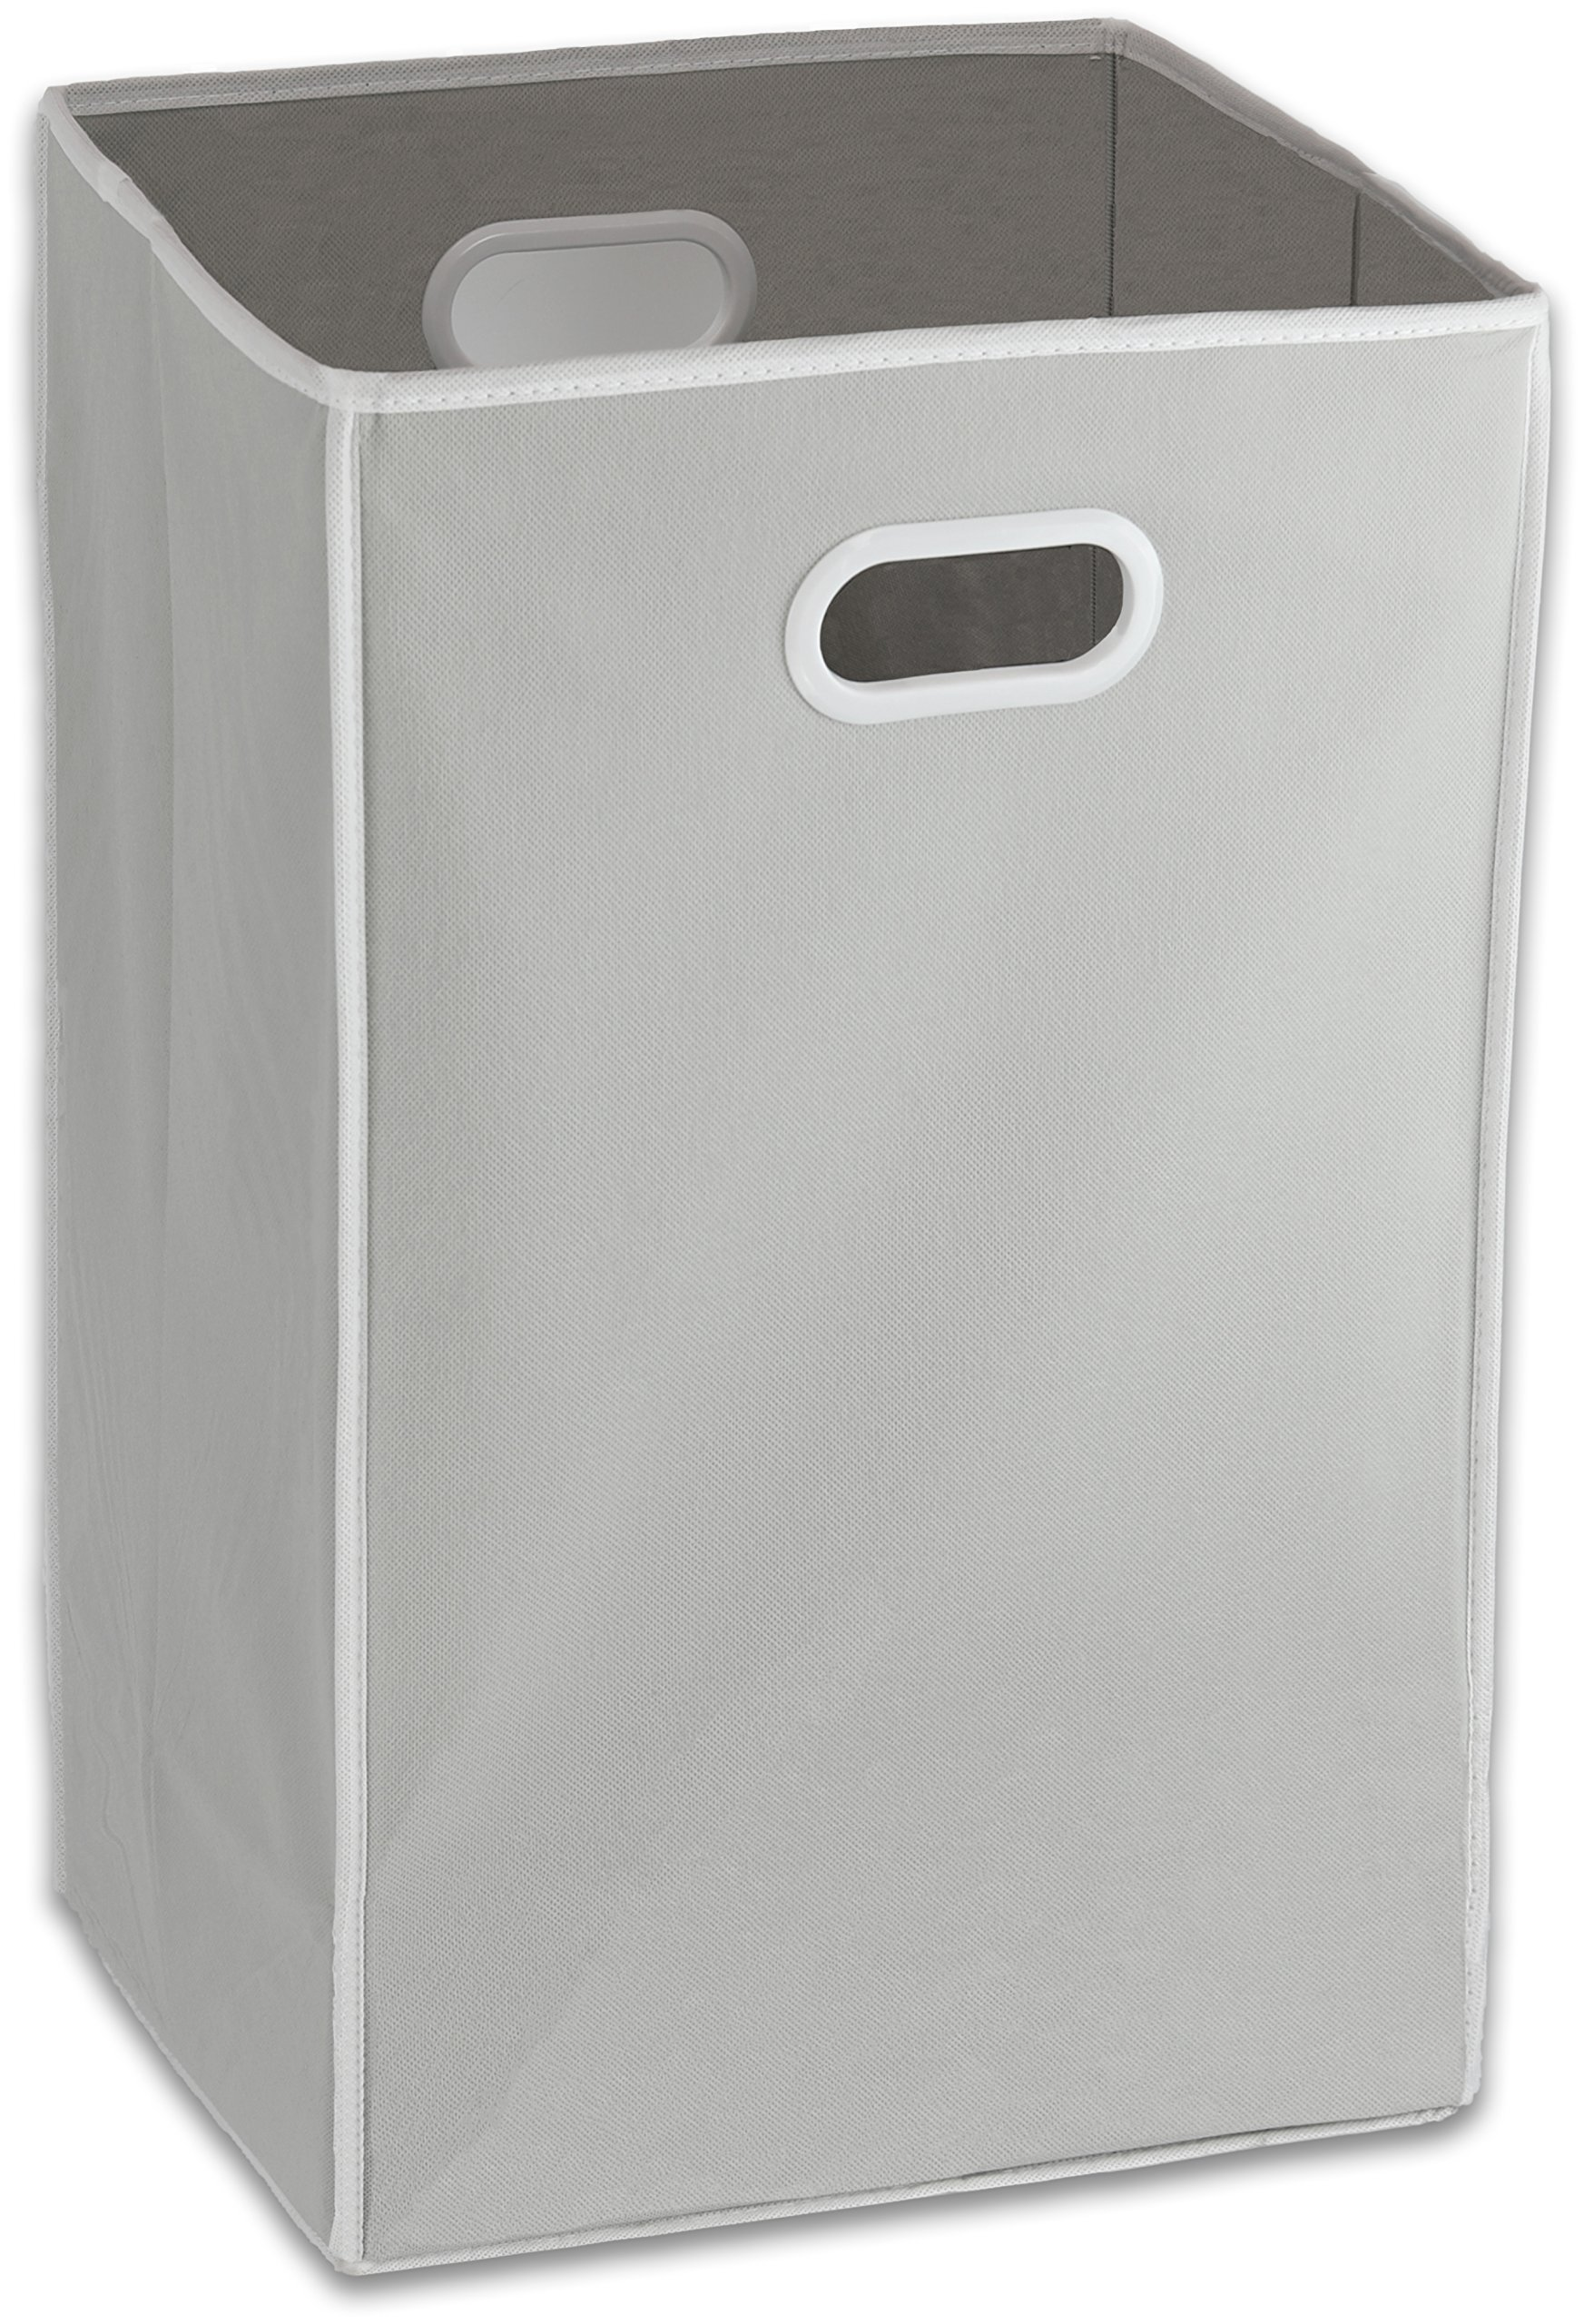 Foldable Closet Laundry Hamper Basket, Grey by Simple Houseware